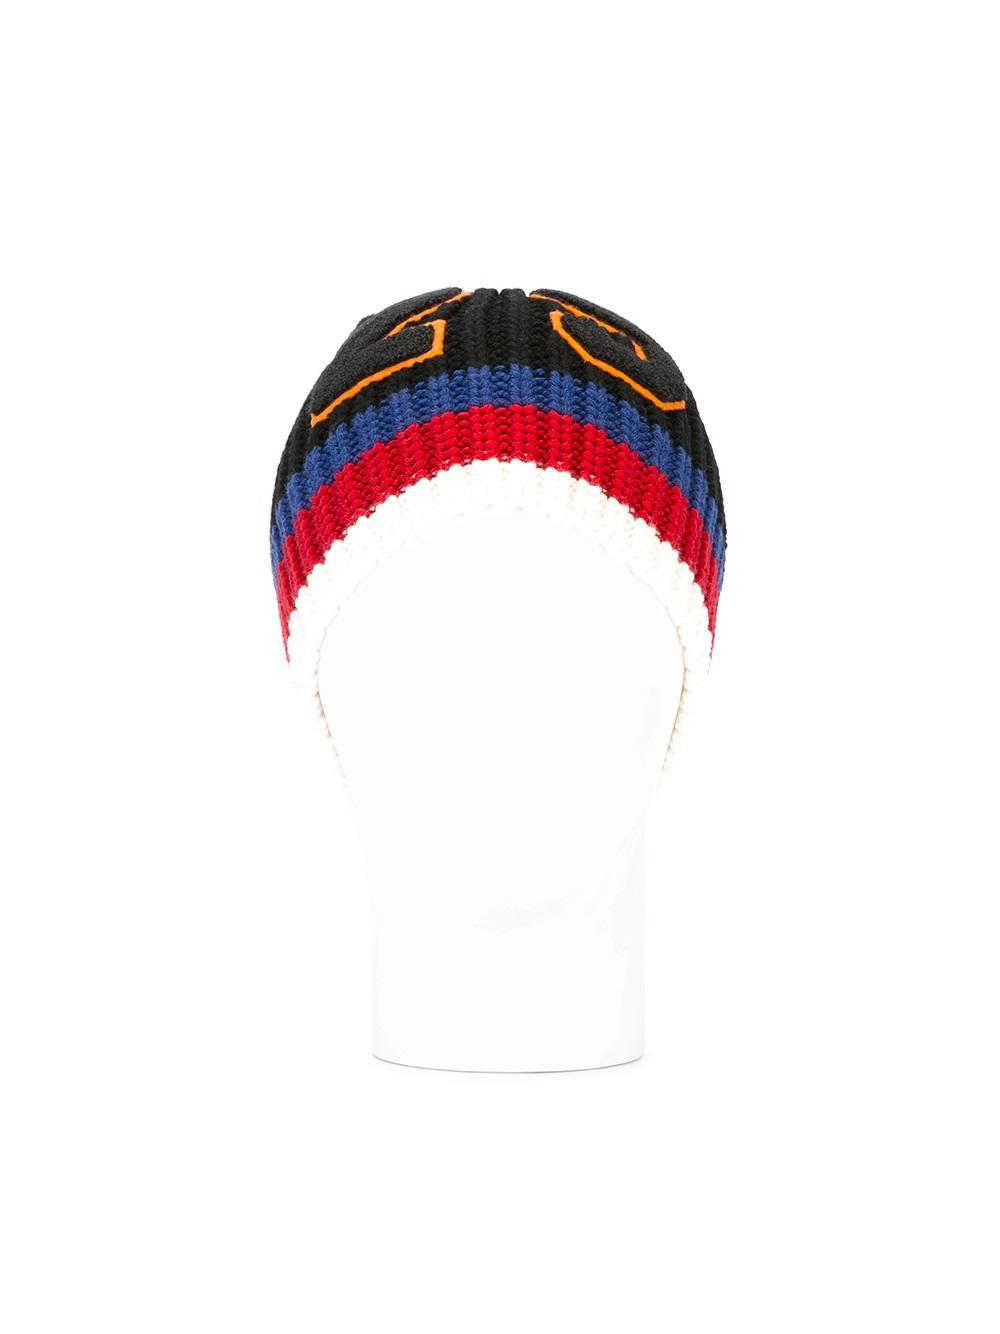 Gucci 25 Ribbed Knit Beanie in Black for Men - Lyst c3c50f02d264